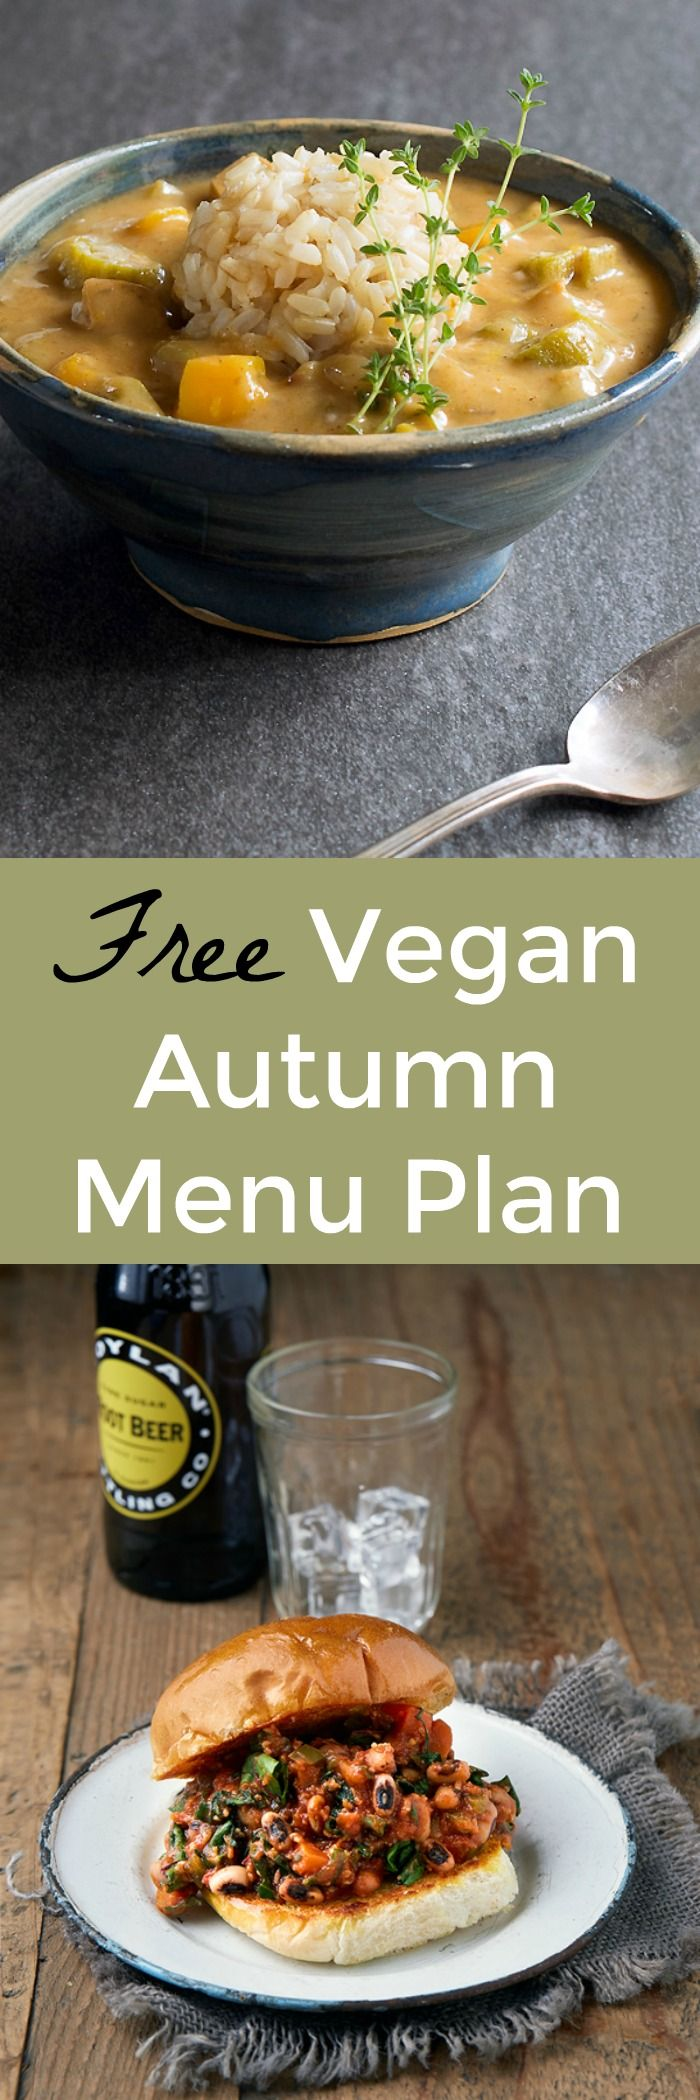 Bursting Full of Fall Flavors NEW and FREE Vegan Menu Plan